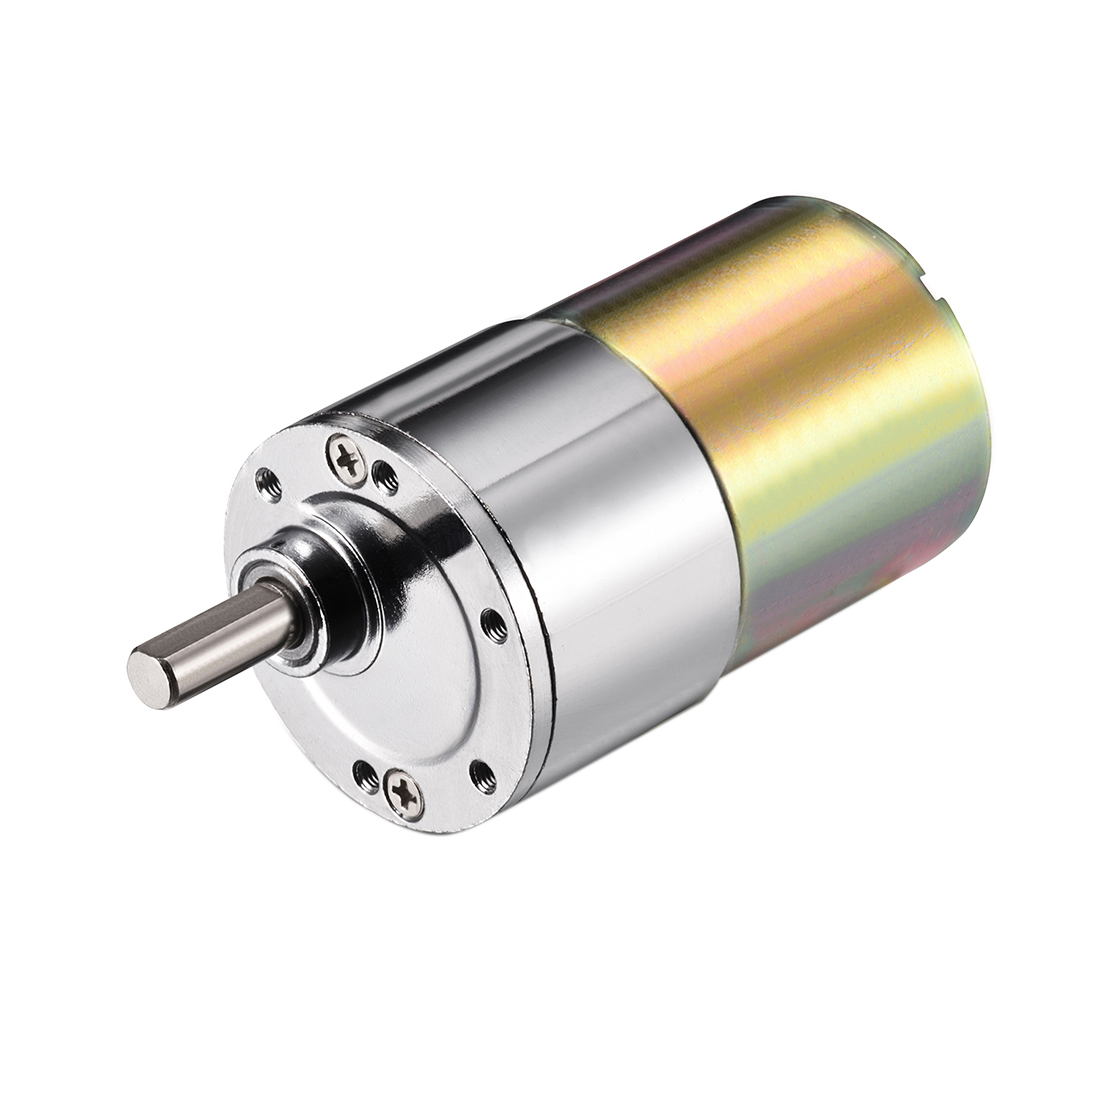 DC 24V 120RPM Micro Gear Box Motor Speed Reduction Electric Gearbox Eccentric Output Shaft